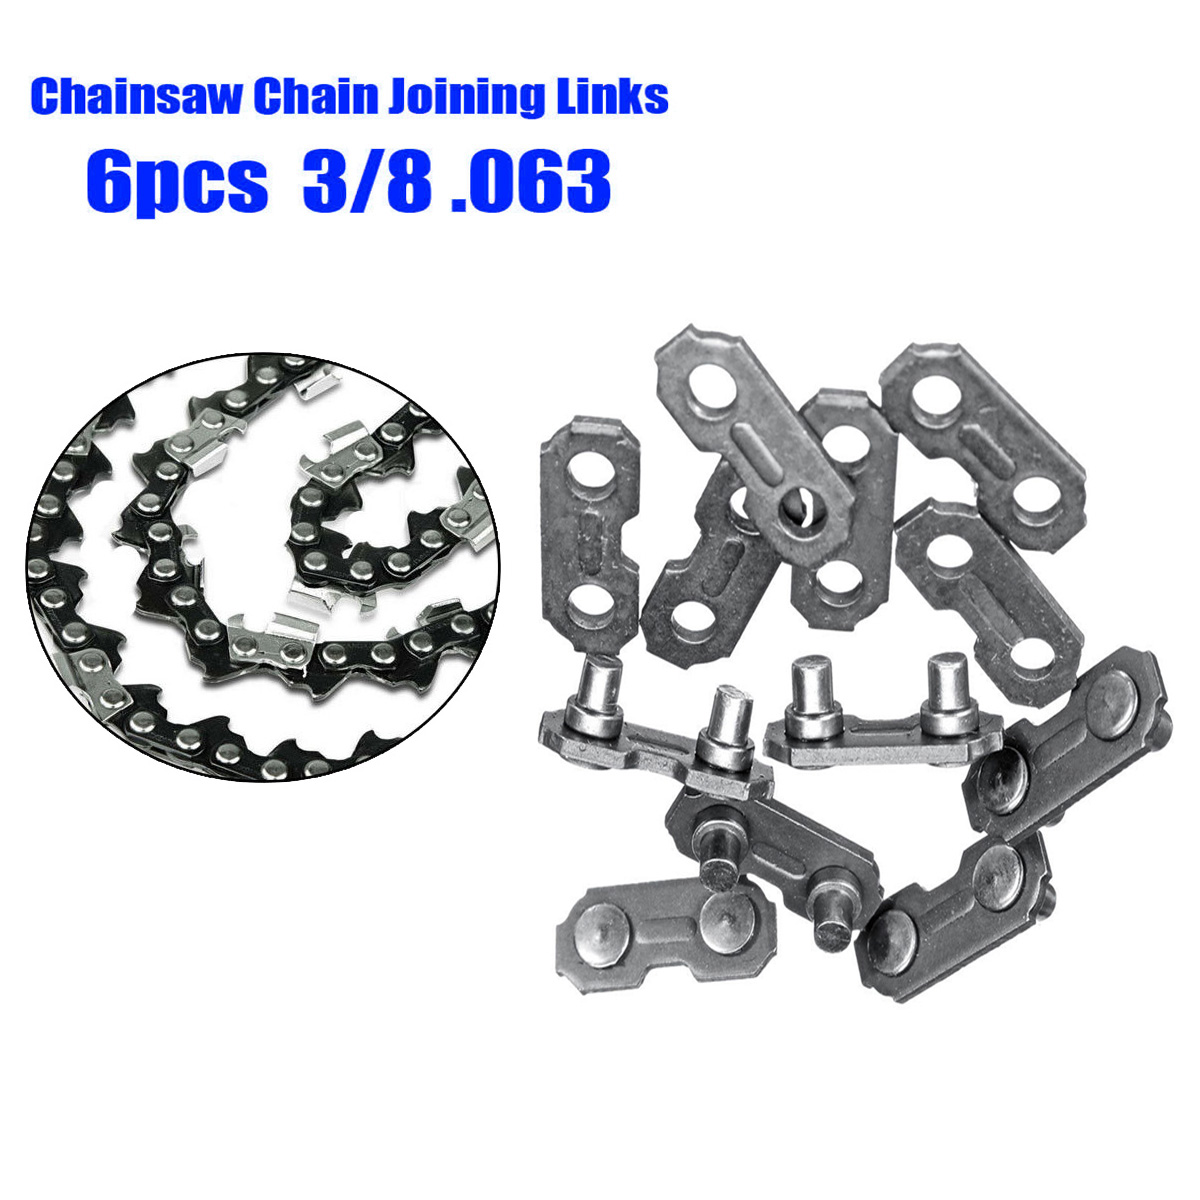 Tools Replacement Garden Link 3/8 Steel Chainsaw Chain Joiner For Joining Chains 17.5mmx6.9mm Part Accs Kit Set